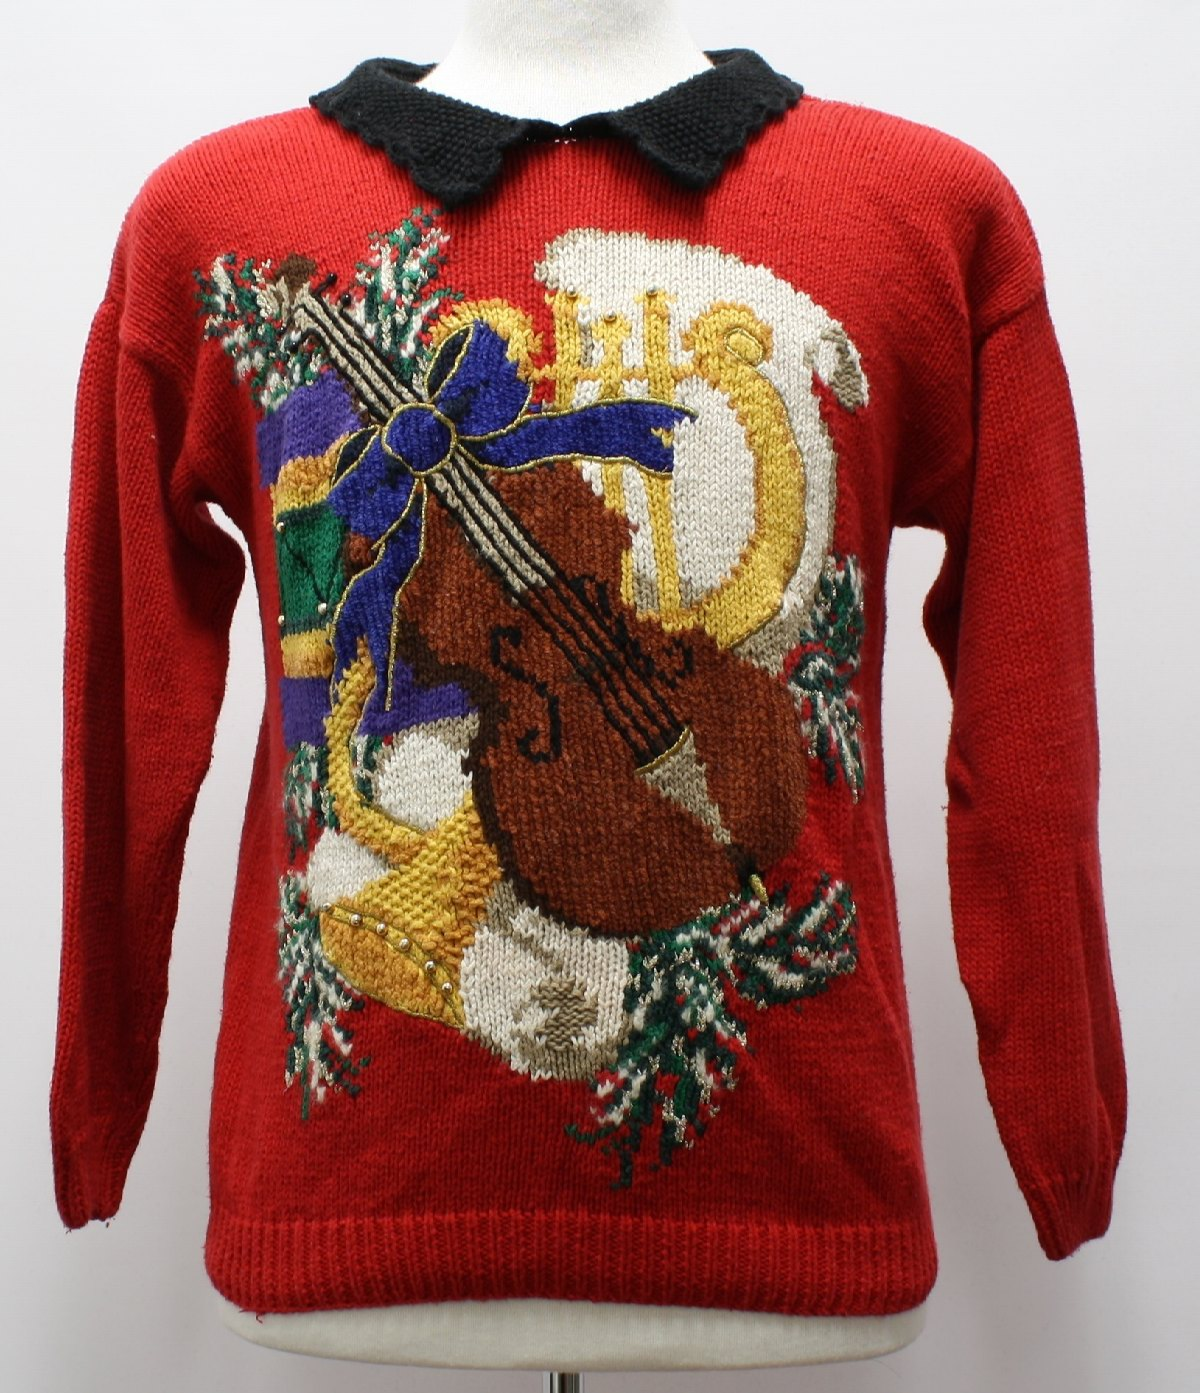 Womens Ugly Christmas Sweater: 80s Style -Talbots- Womens red ...